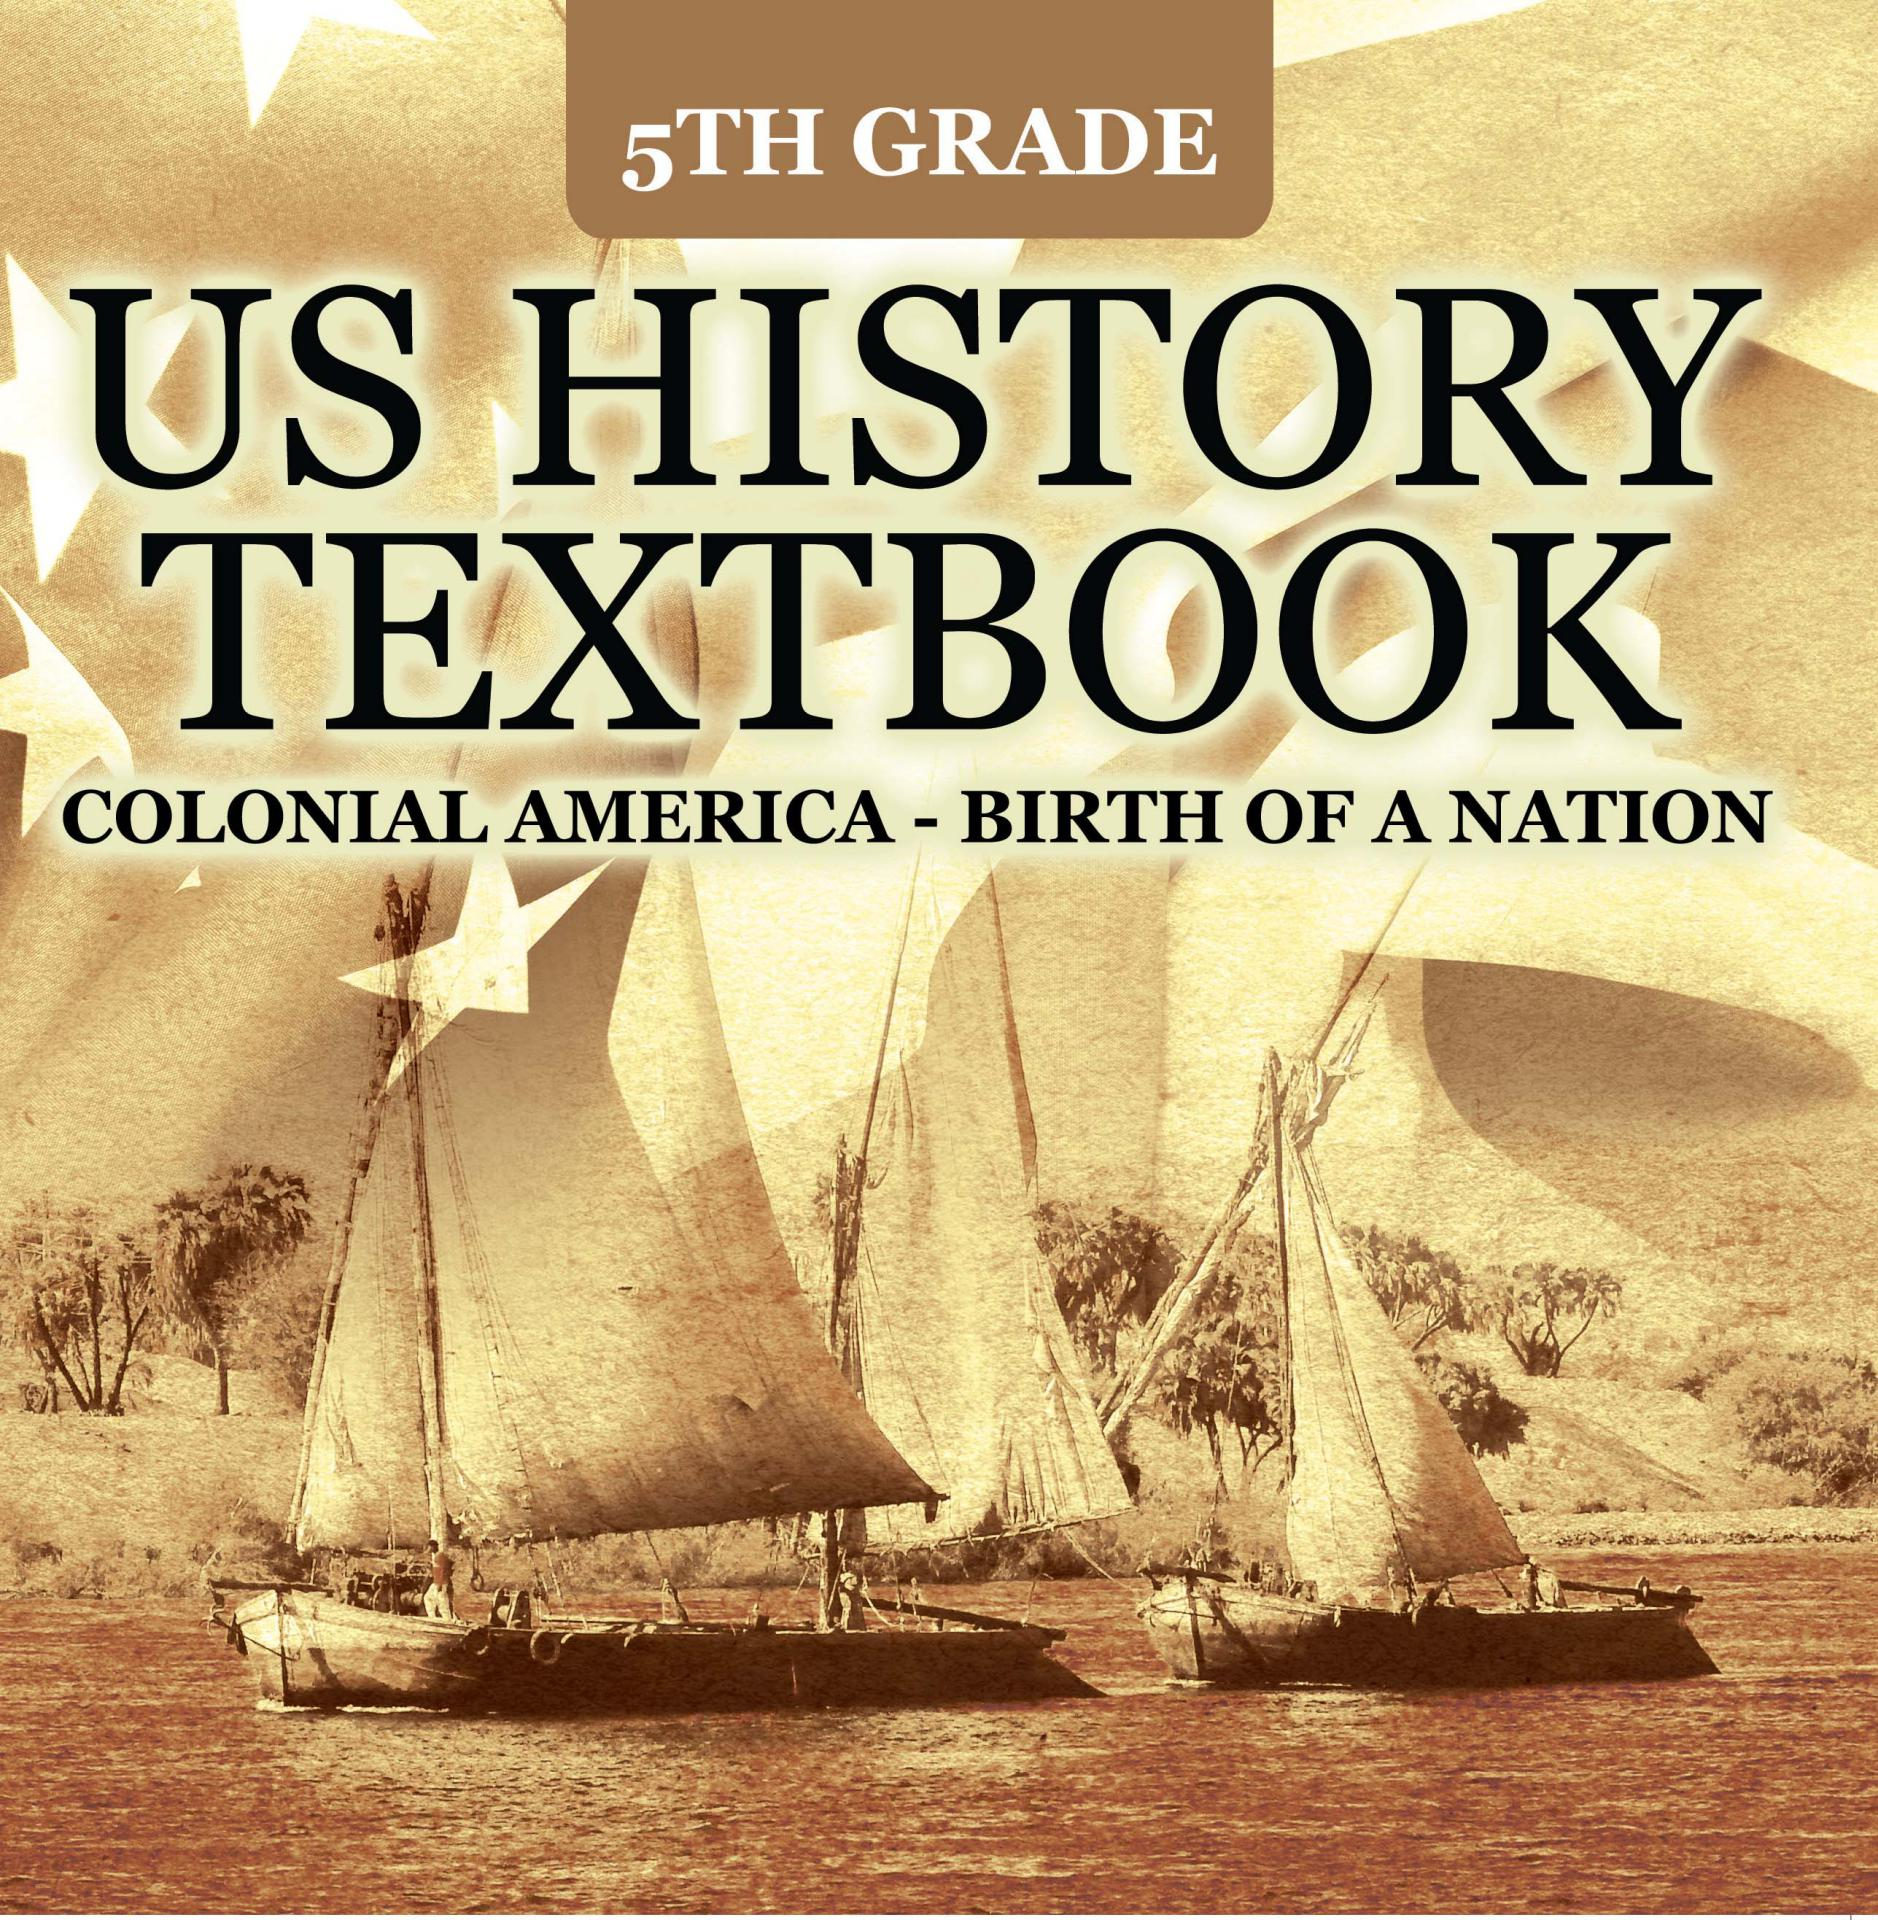 5th Grade US History Textbook: Colonial America - Birth of A Nation Fifth Grade Books US Colonial Period